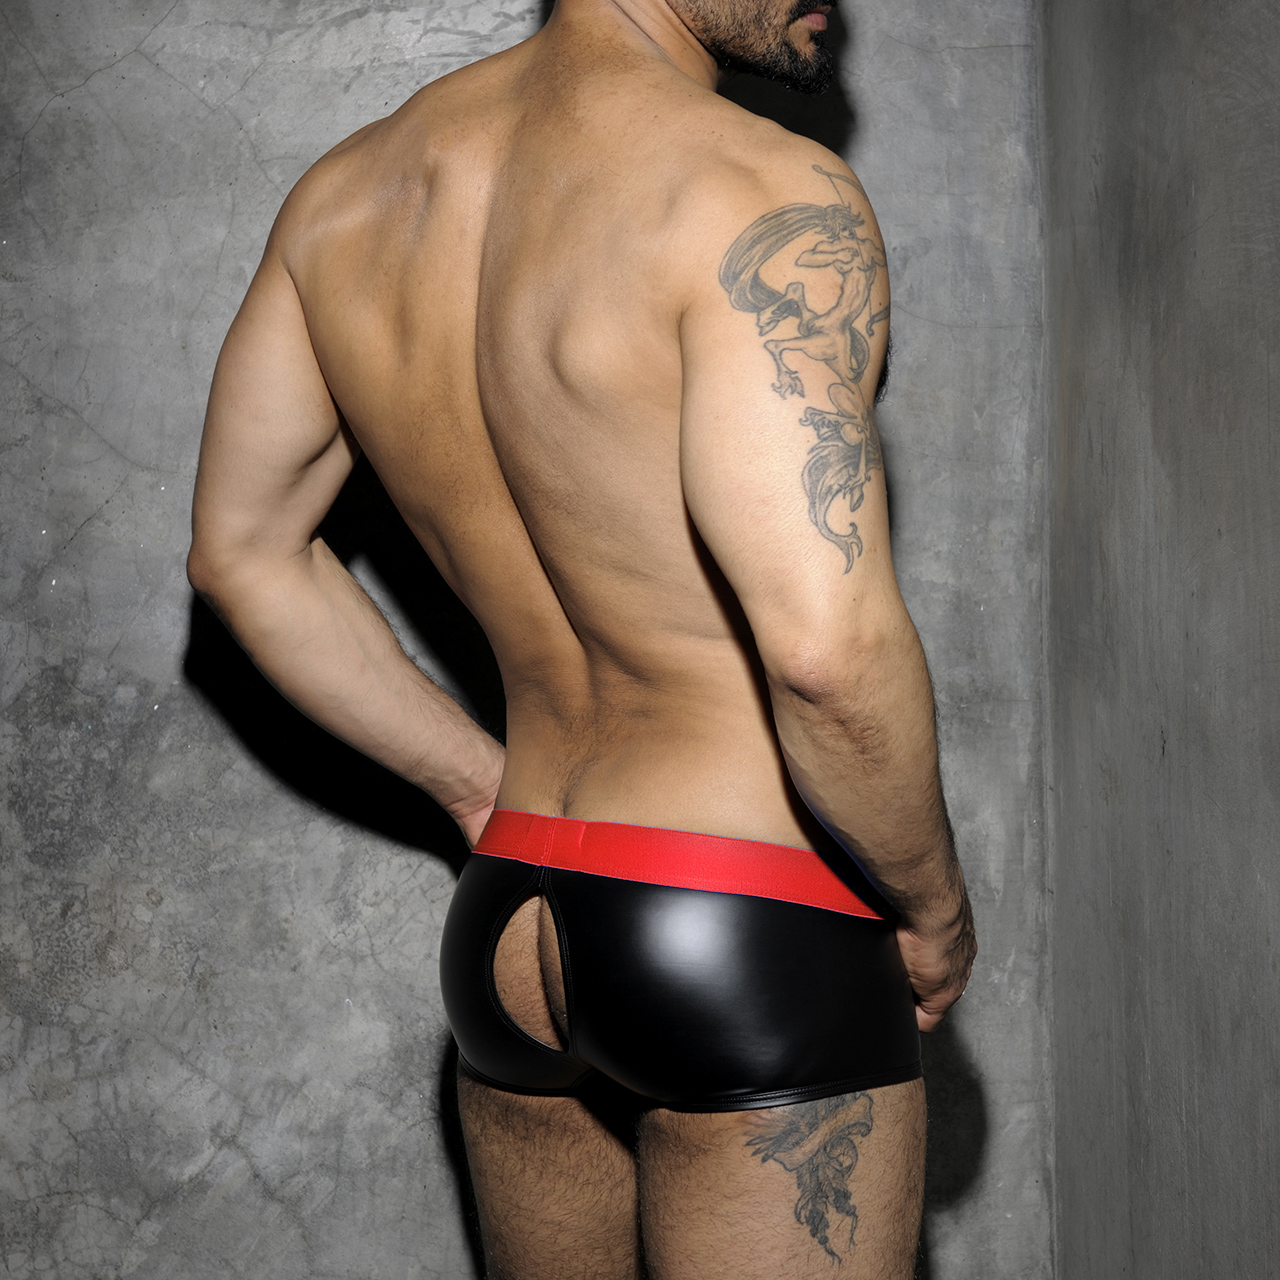 ADDICTED FETISH RUB BOXER BACK OPEN - Red